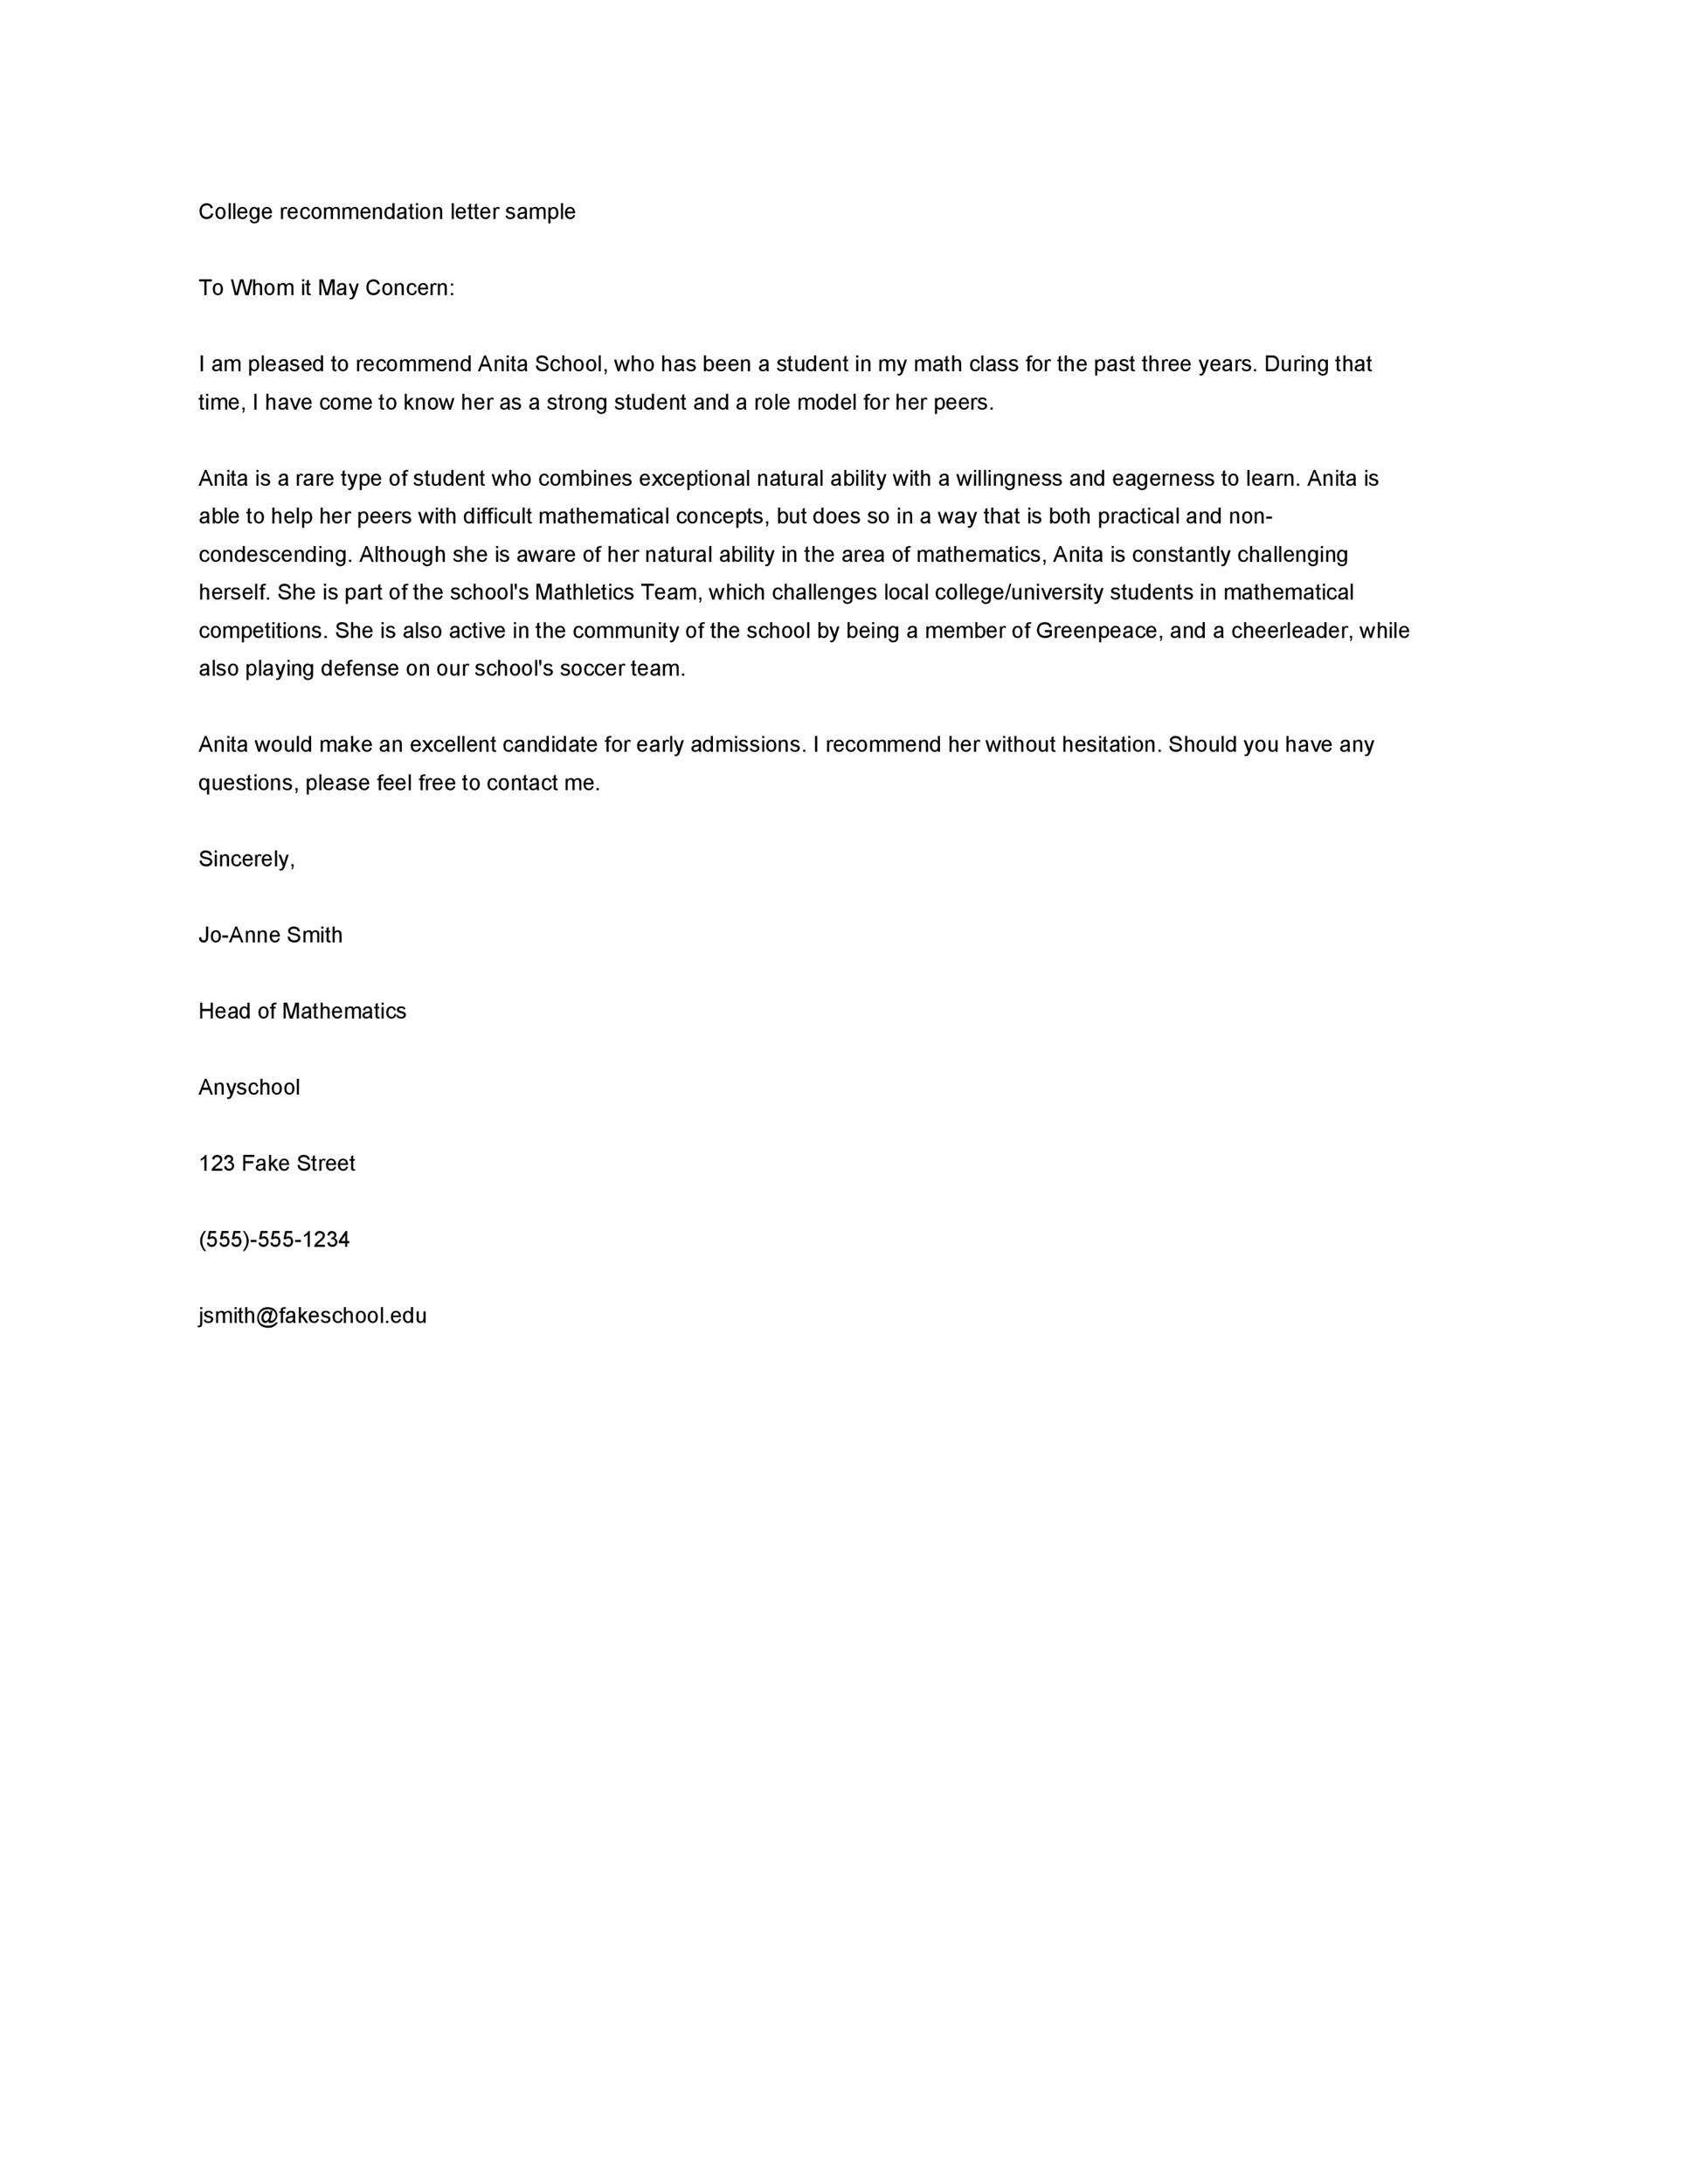 College Admissions Recommendation Letter Template from lh3.googleusercontent.com